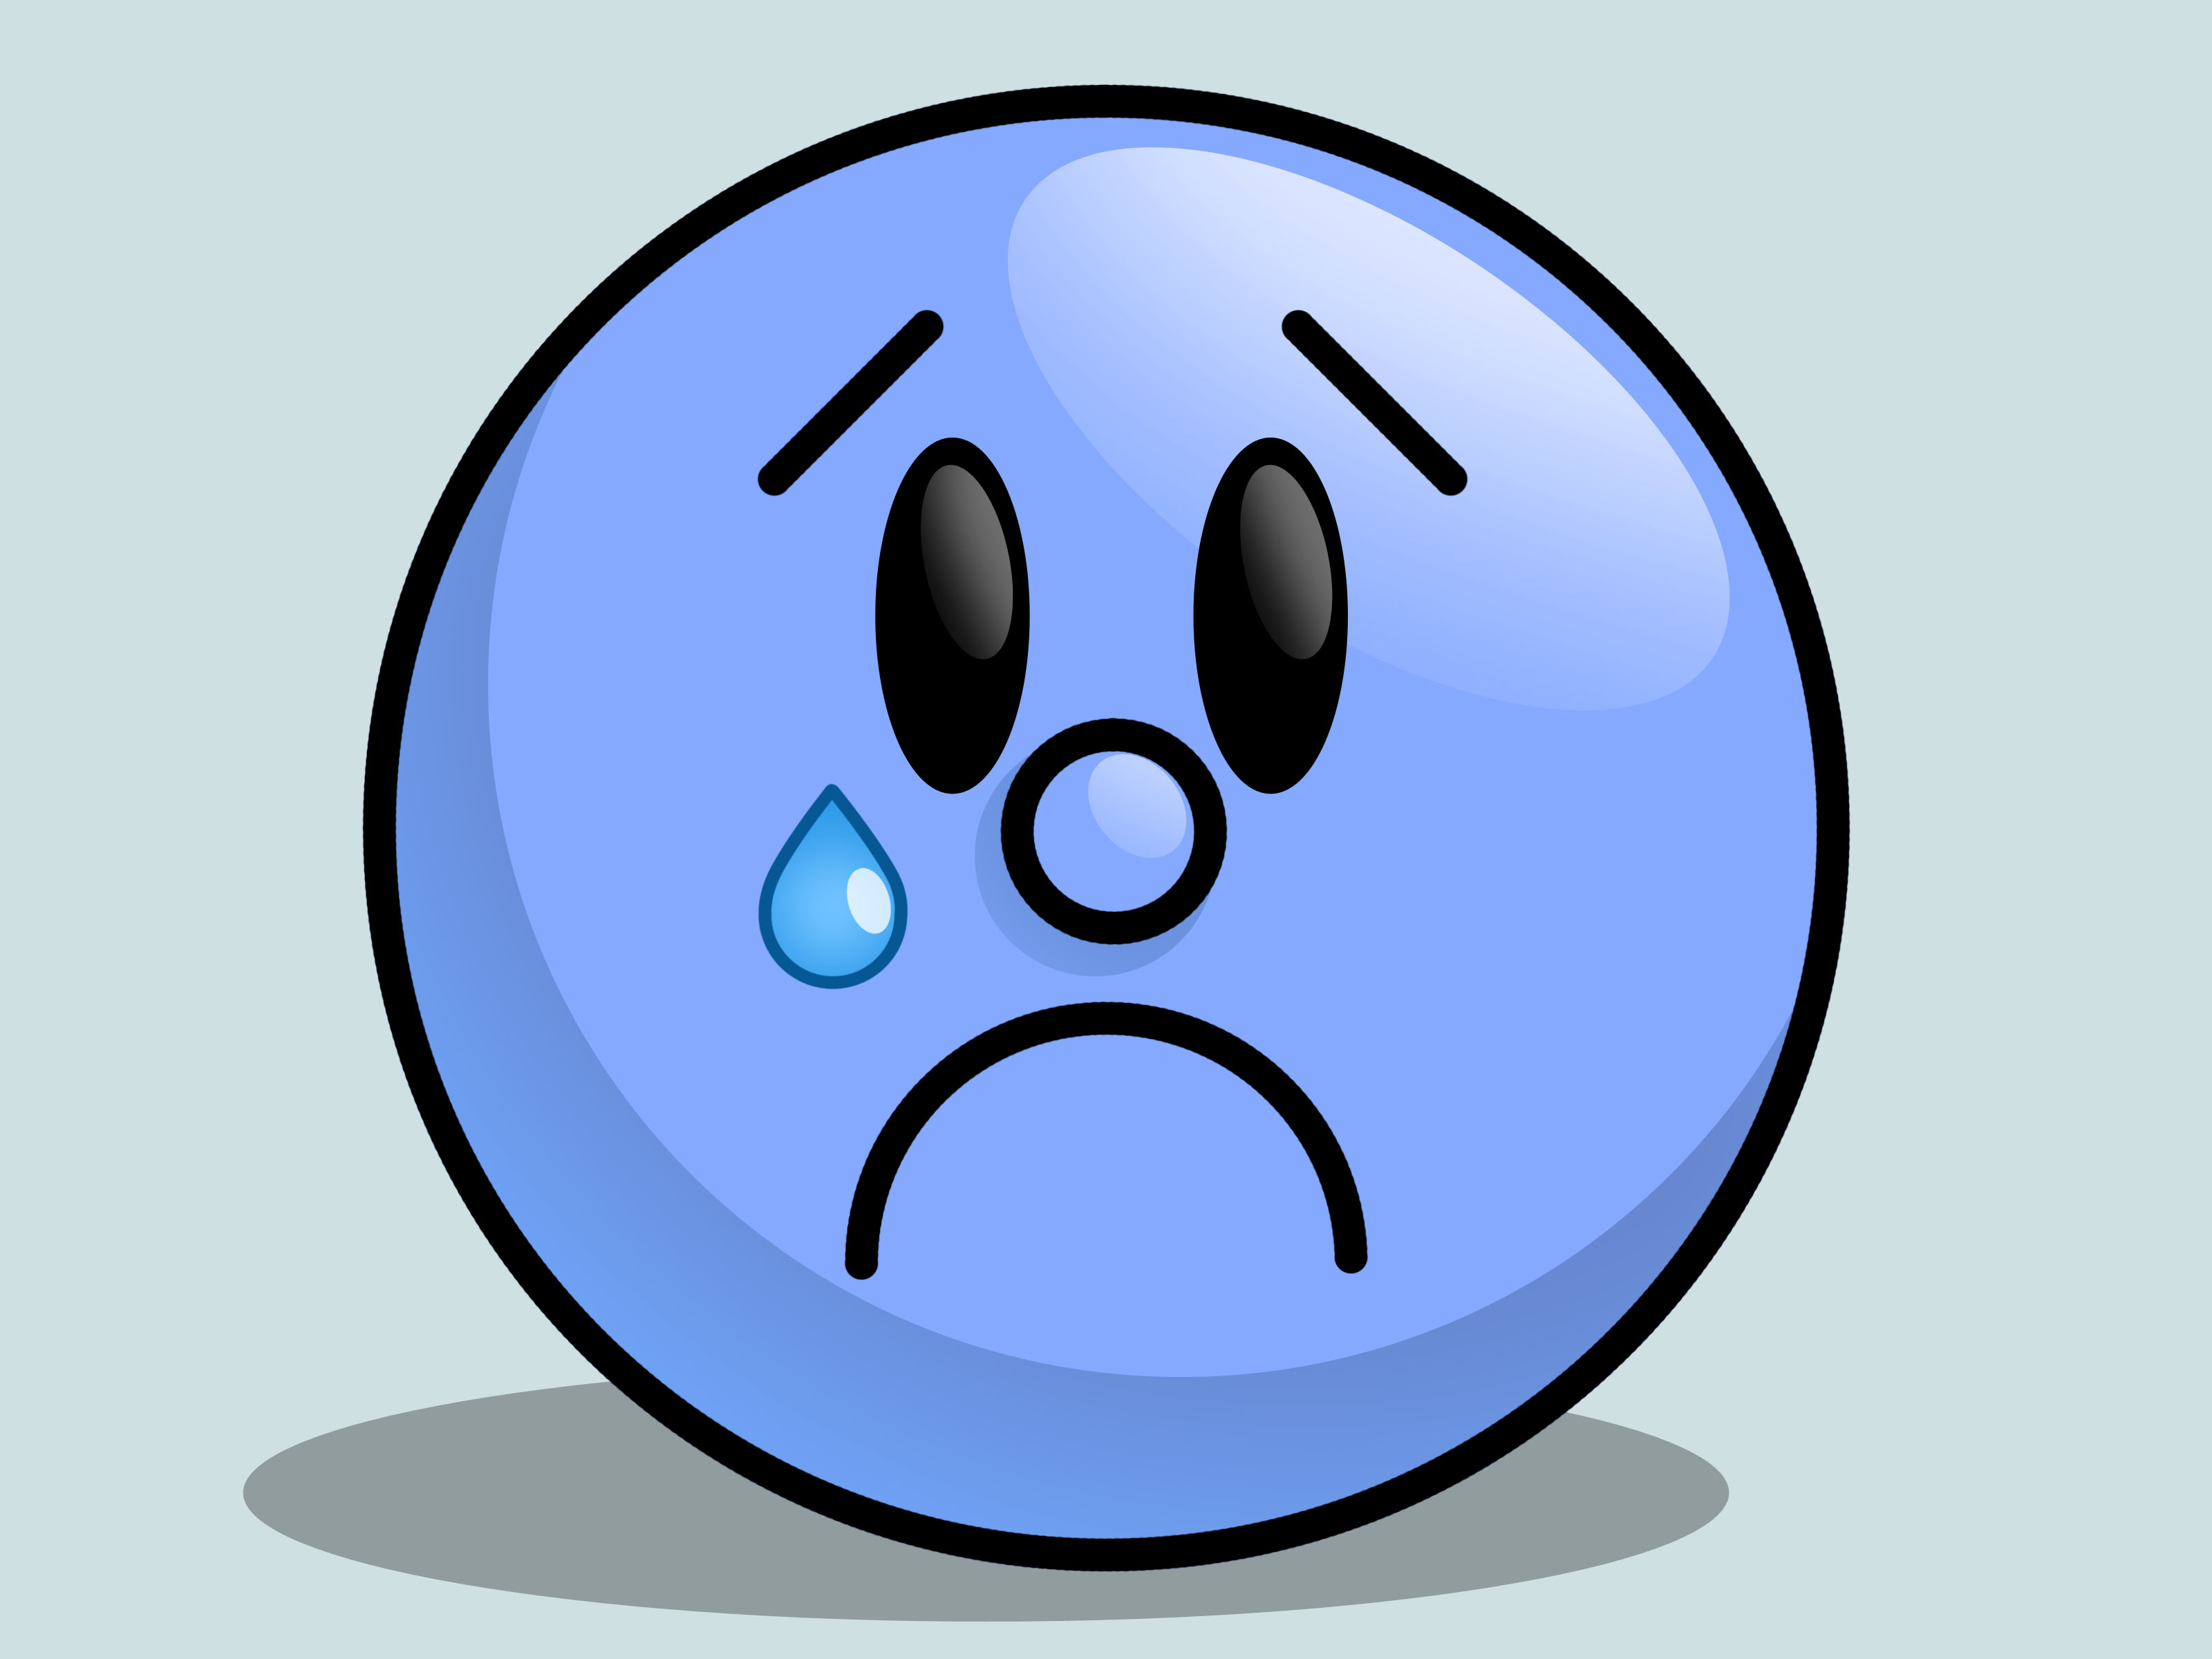 Sad Face Picture Cartoon | Free download on ClipArtMag